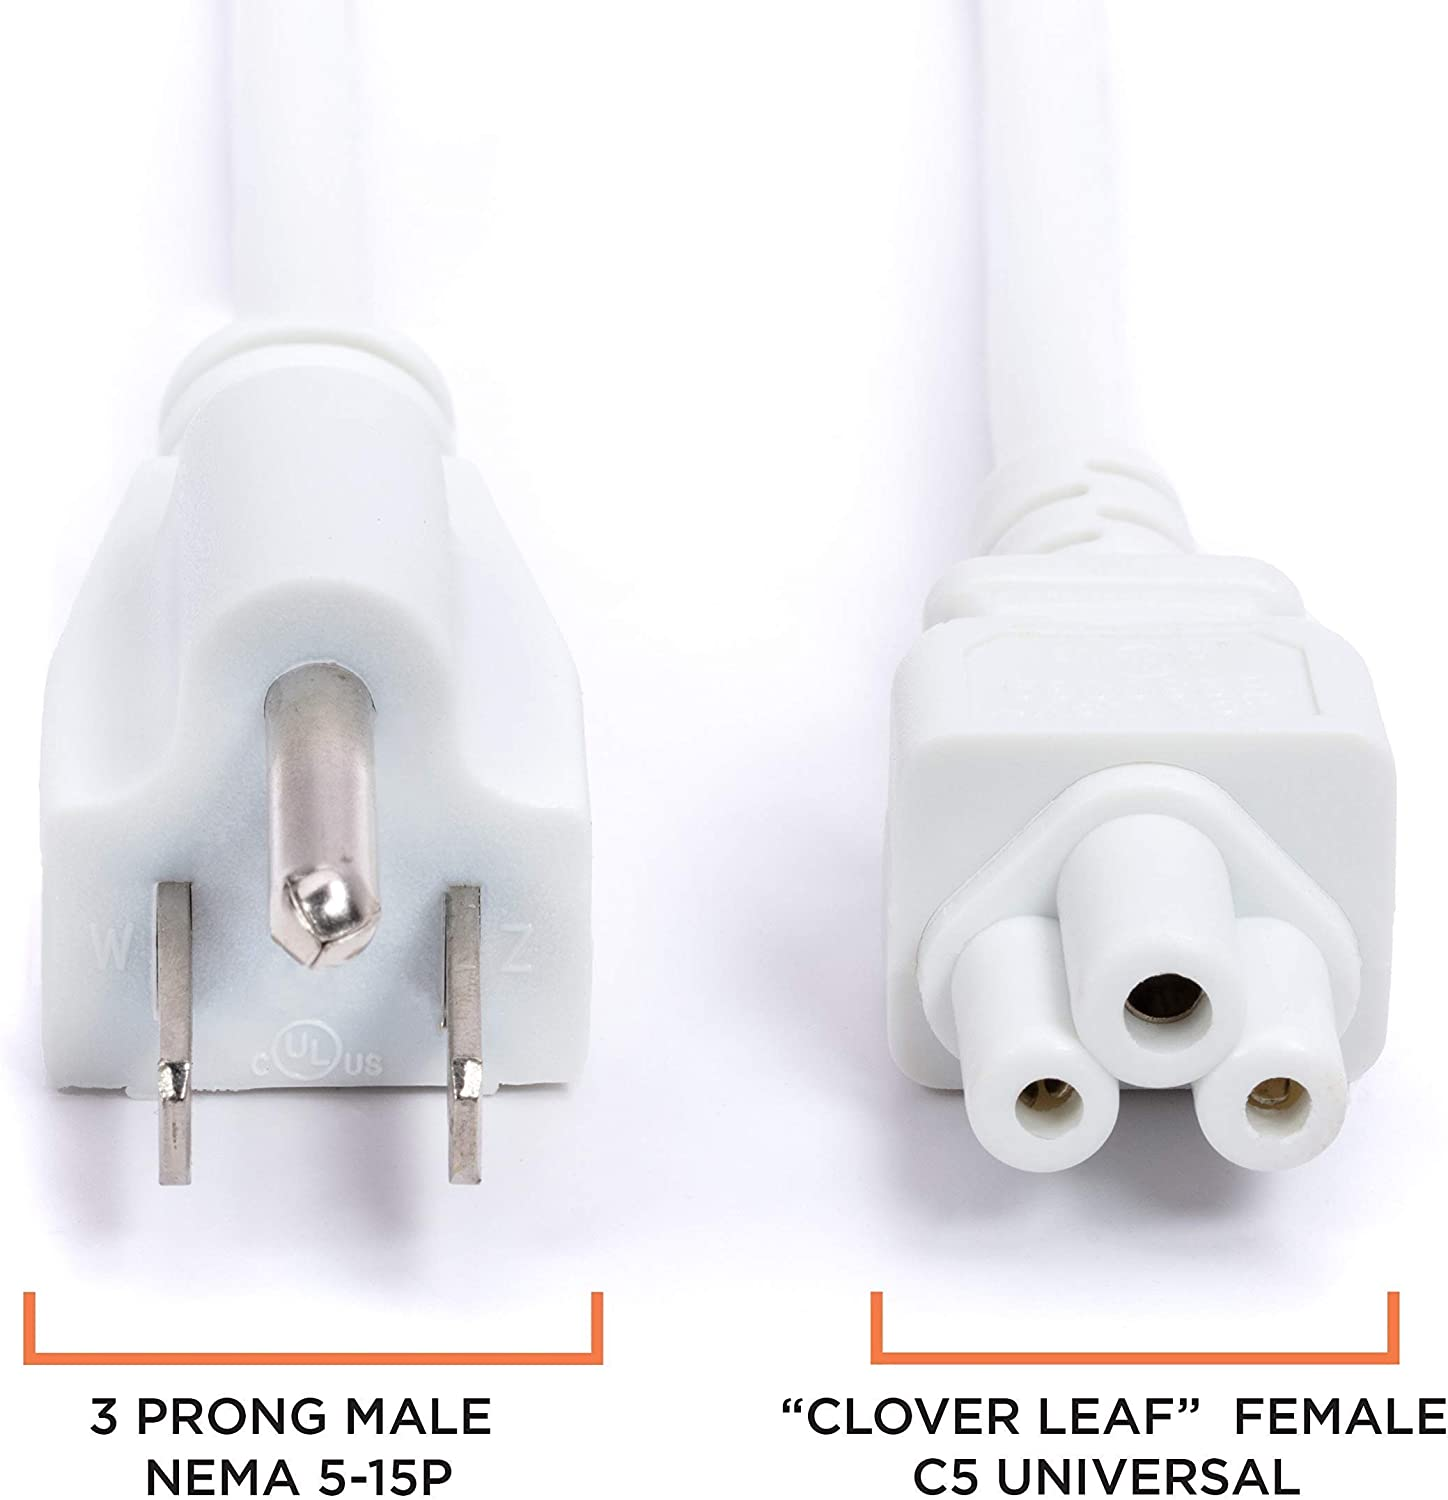 NEMA 5-15 to C5 // IEC 320 3 Prong Premium Quality Copper Wire Core Computers Mouse Style for Laptops - White AC Power Cord /& Power Supplies UL Listed 25 Feet